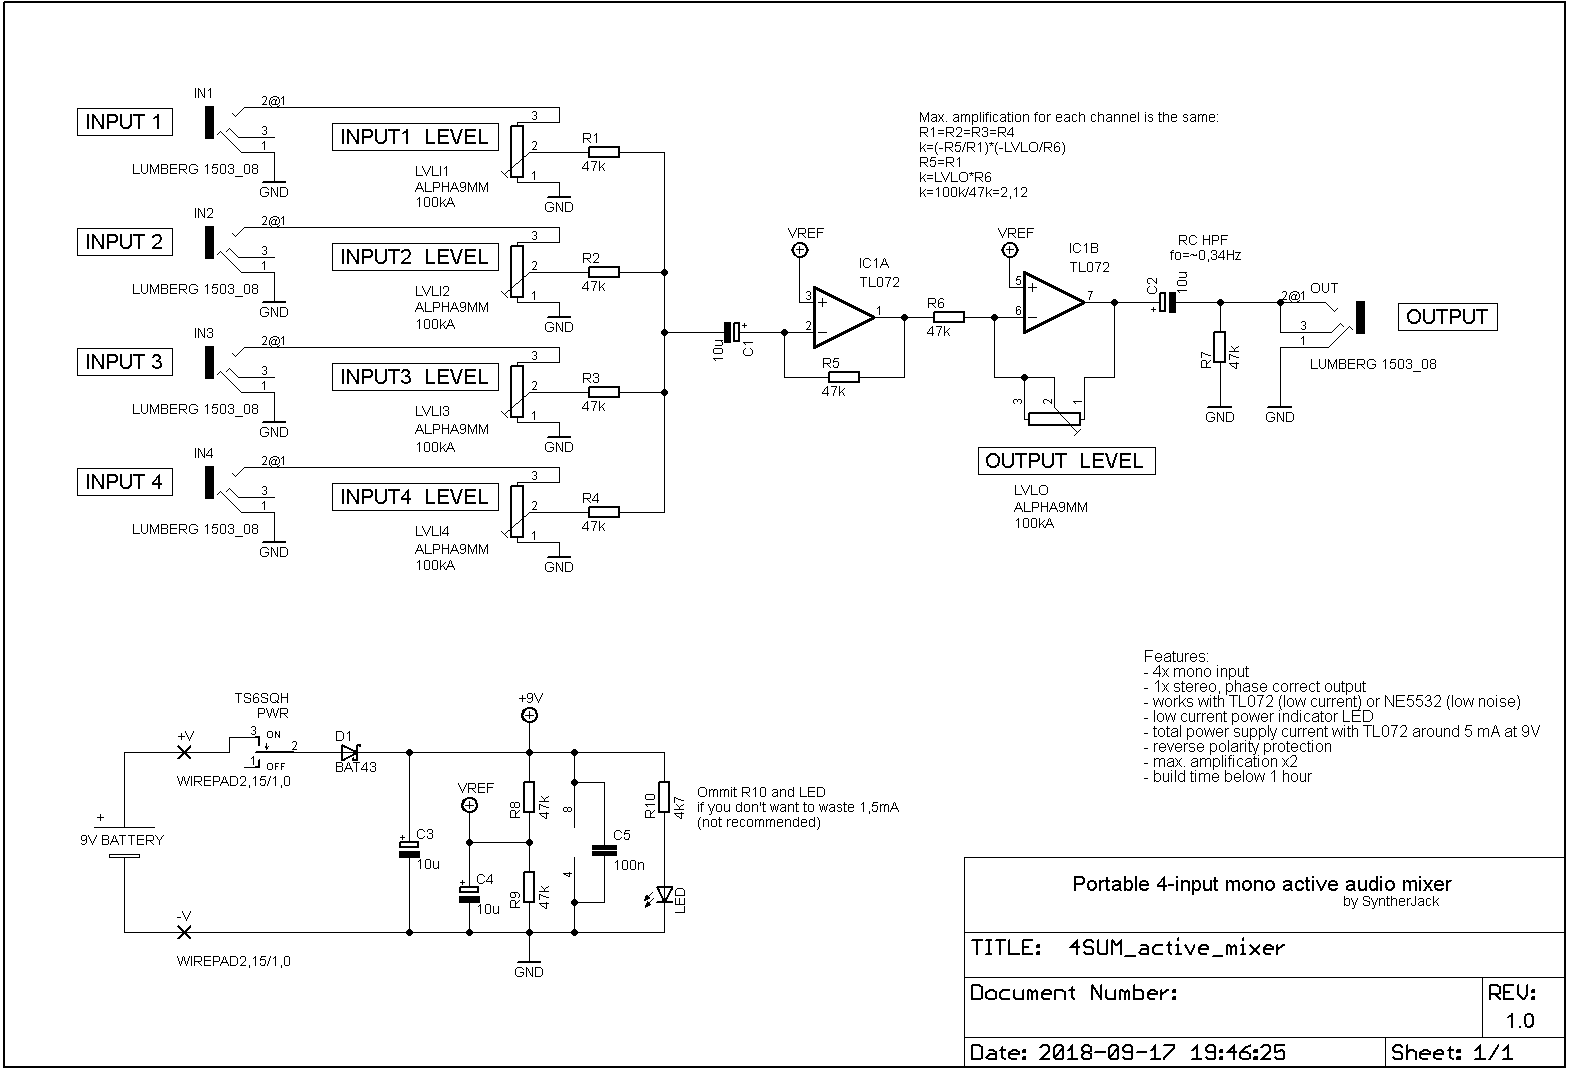 Electronic schematic of 4sum mixer